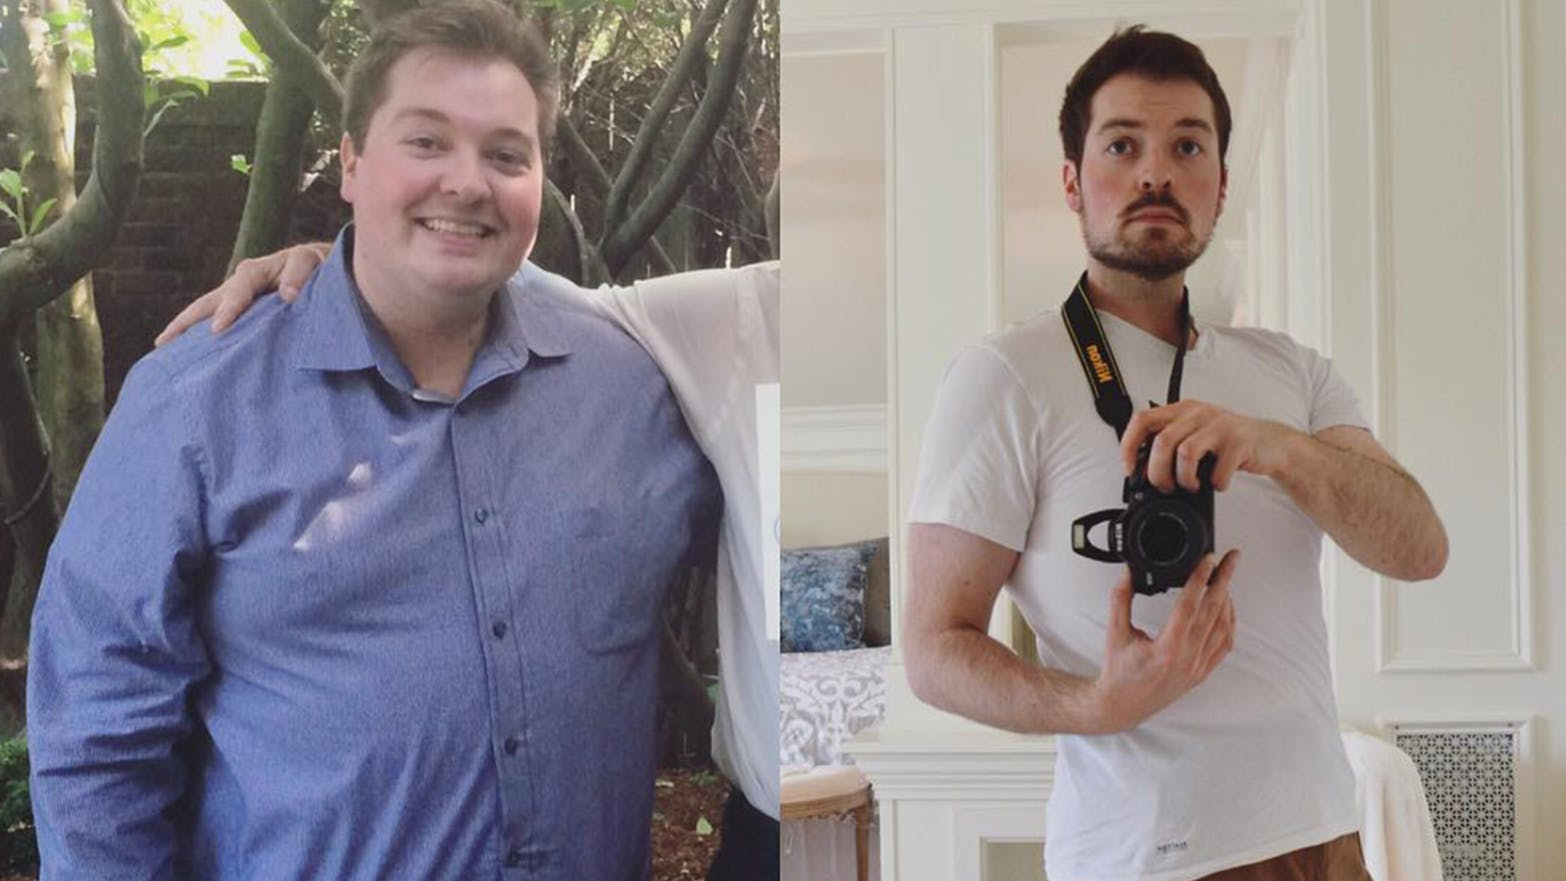 Transformed by low carb and fasting: A doctor's story